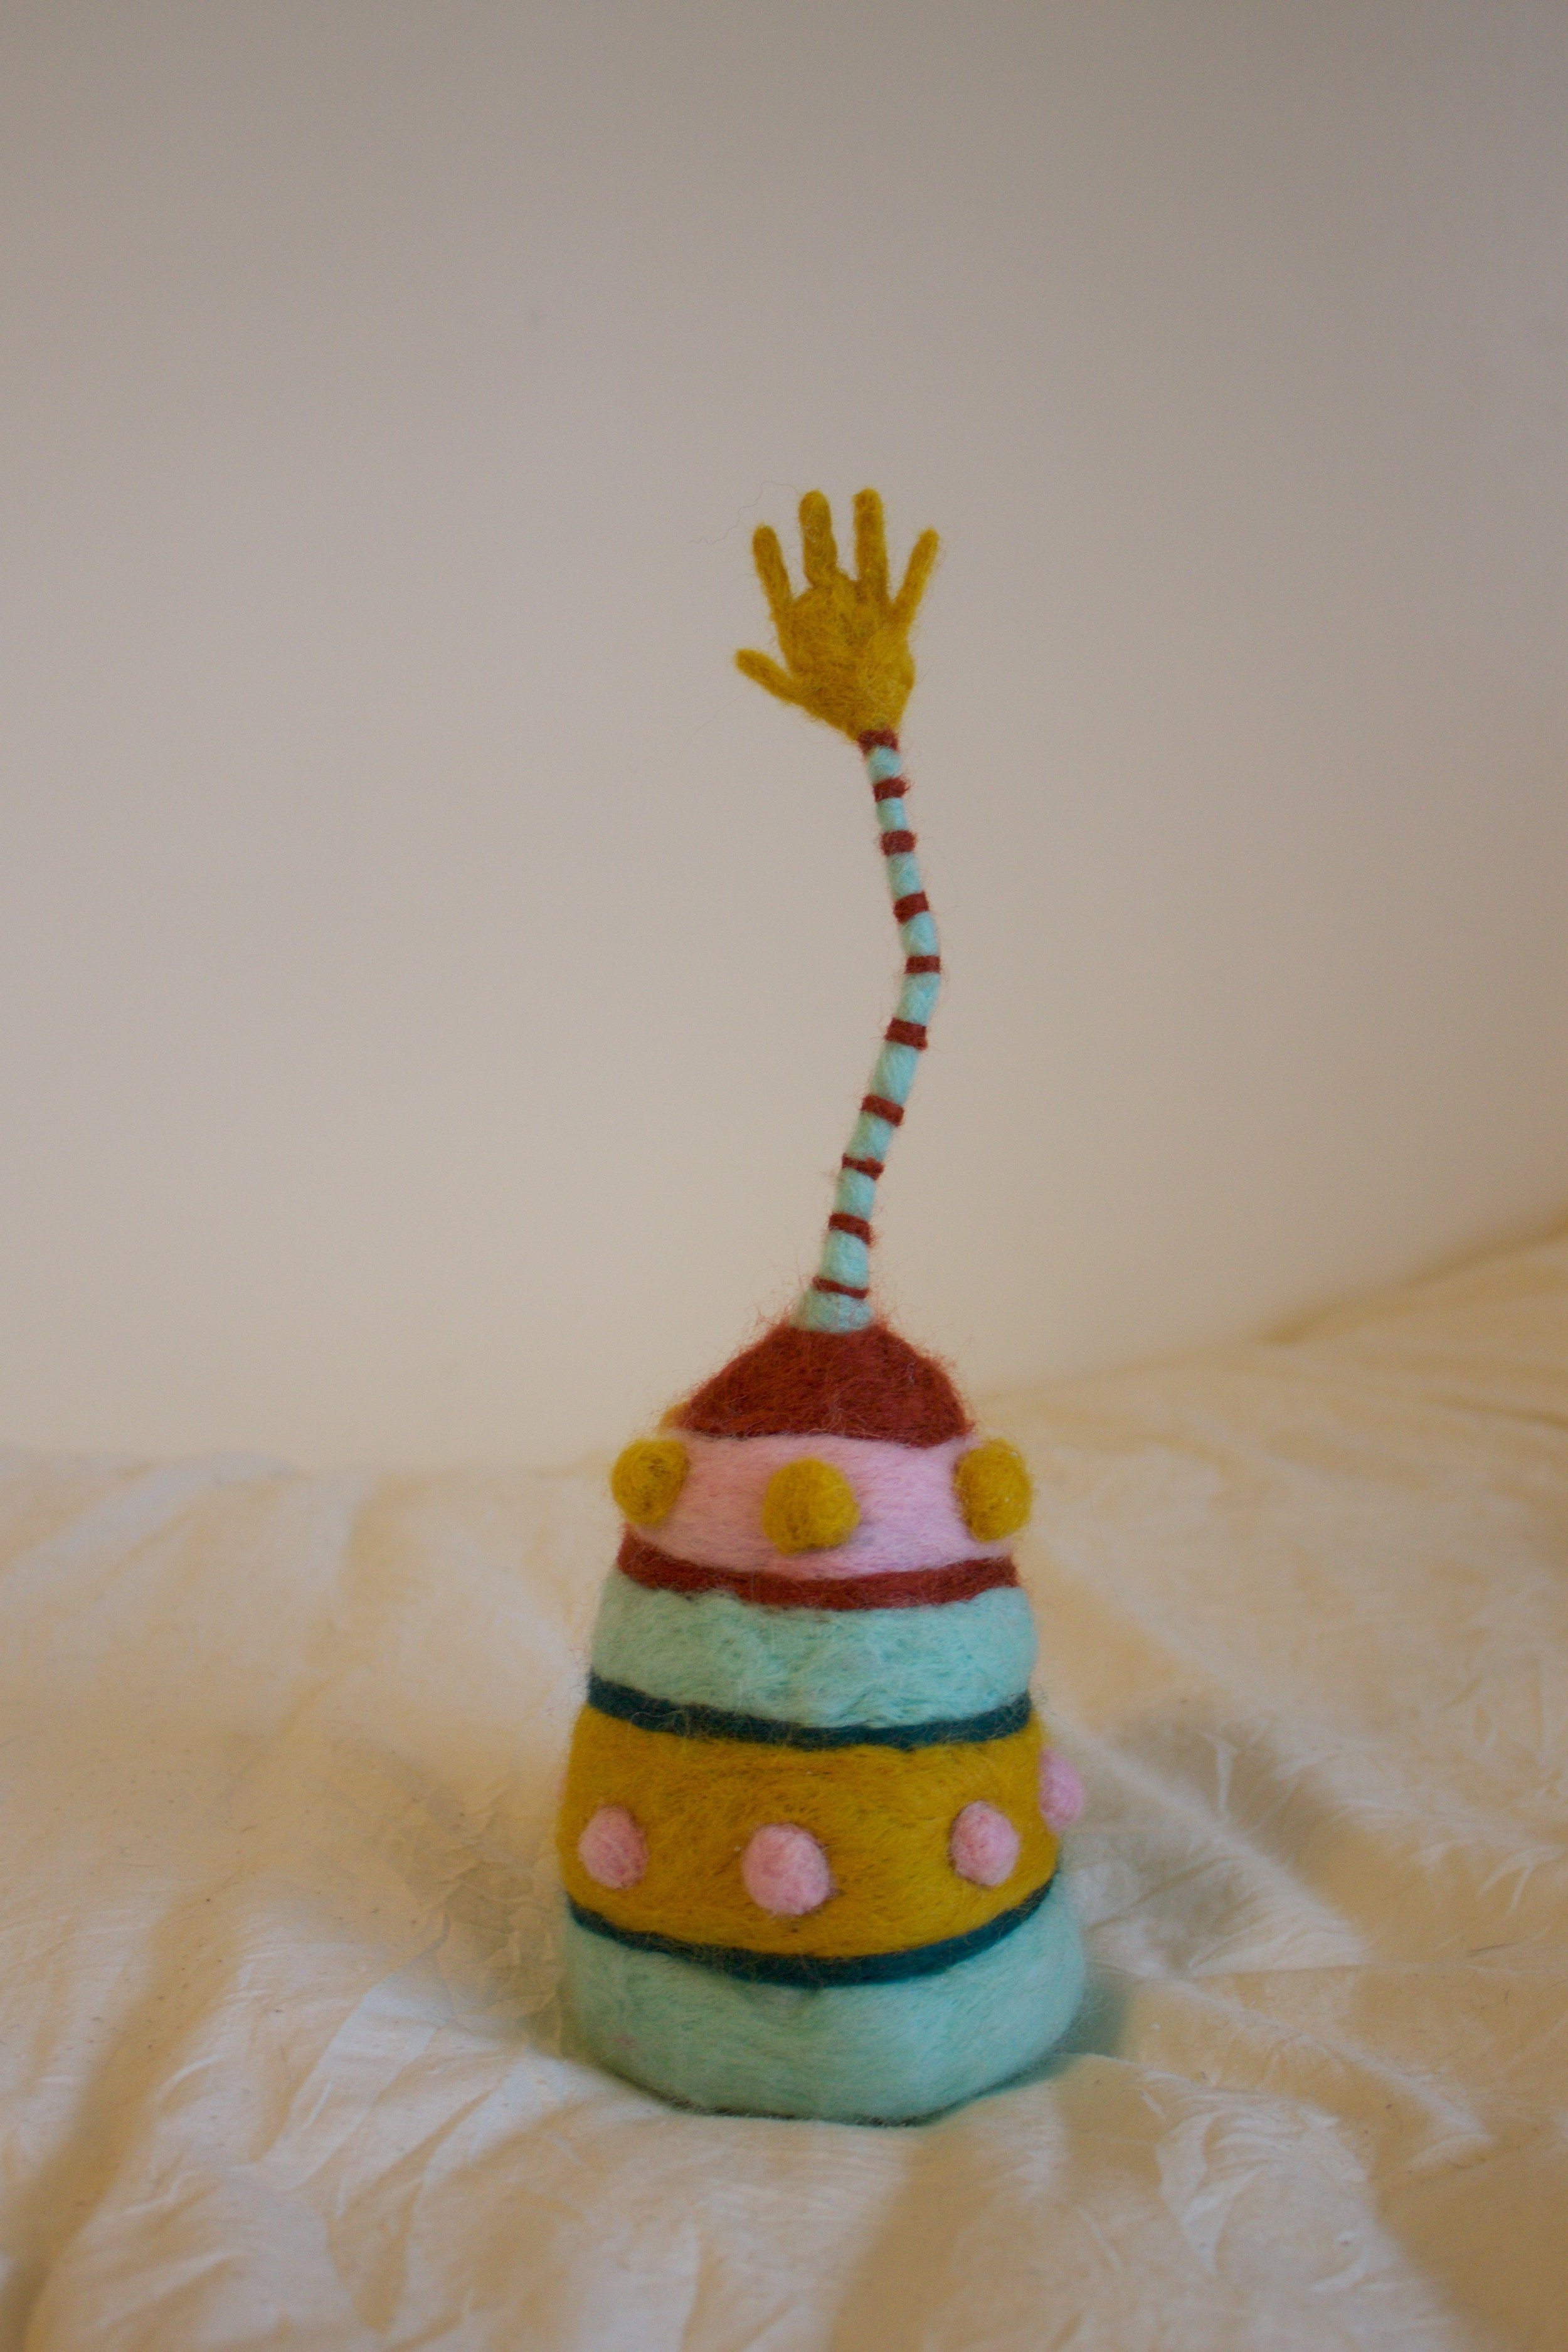 'Manifestation (I Want It!)' - 13 inches tall and 5 inches wide$100